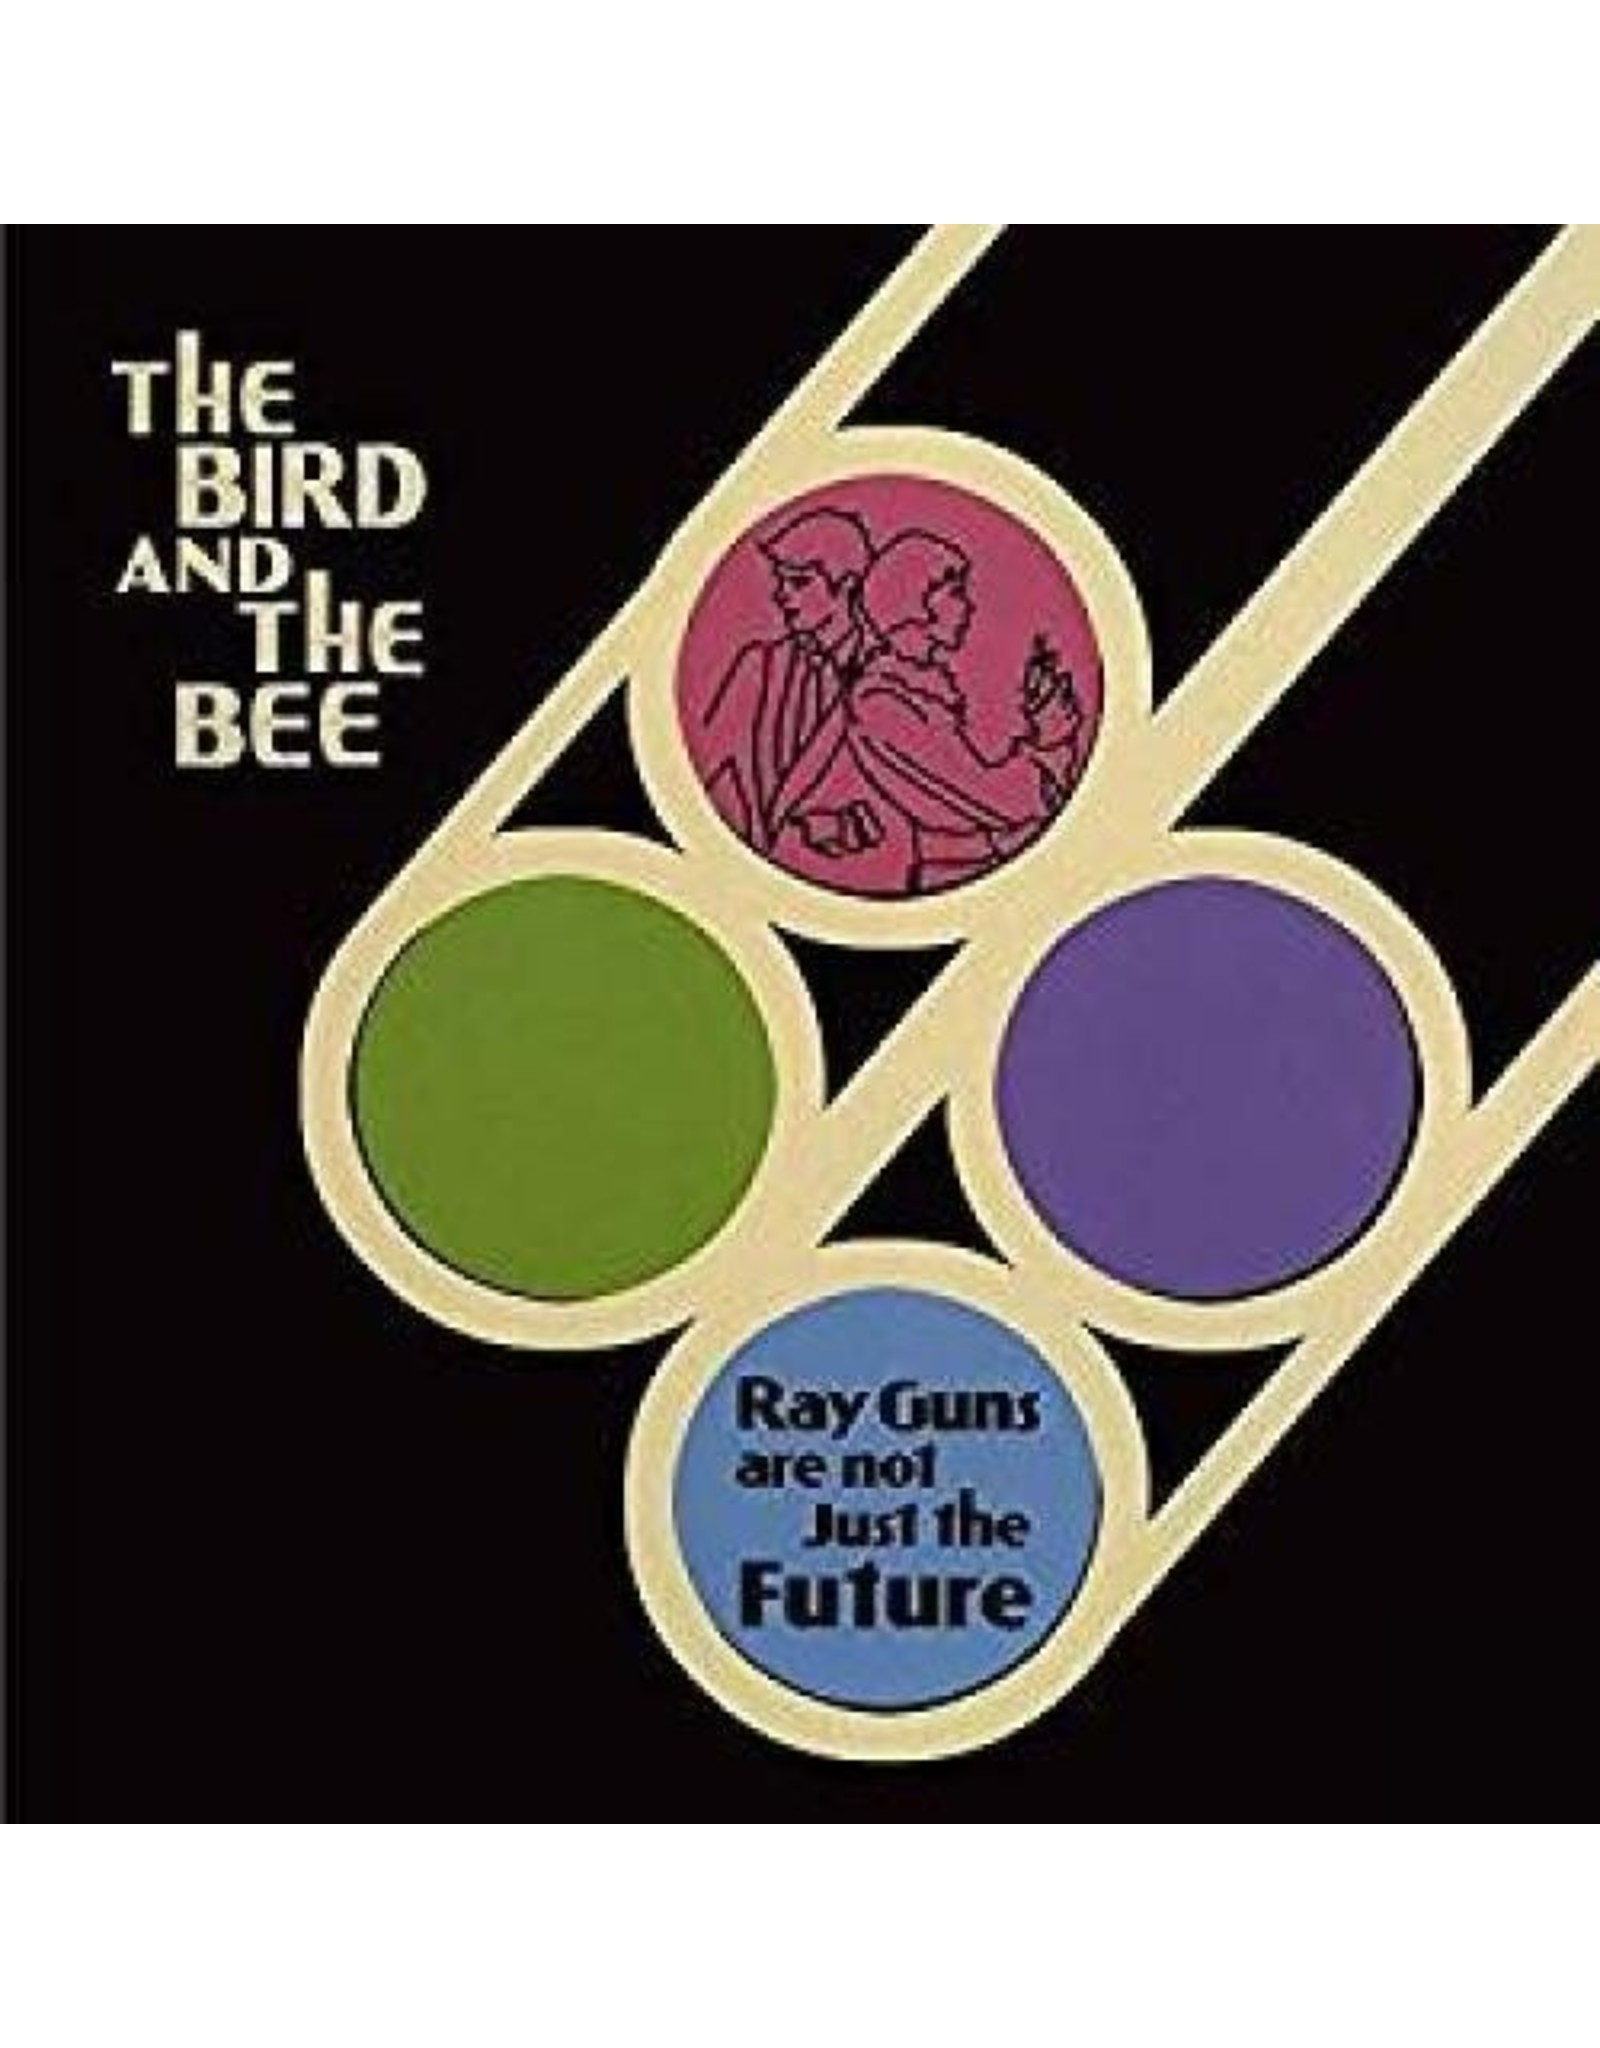 New Vinyl The Bird & The Bee - Ray Guns are not Just the Future (10th Anniversary) LP